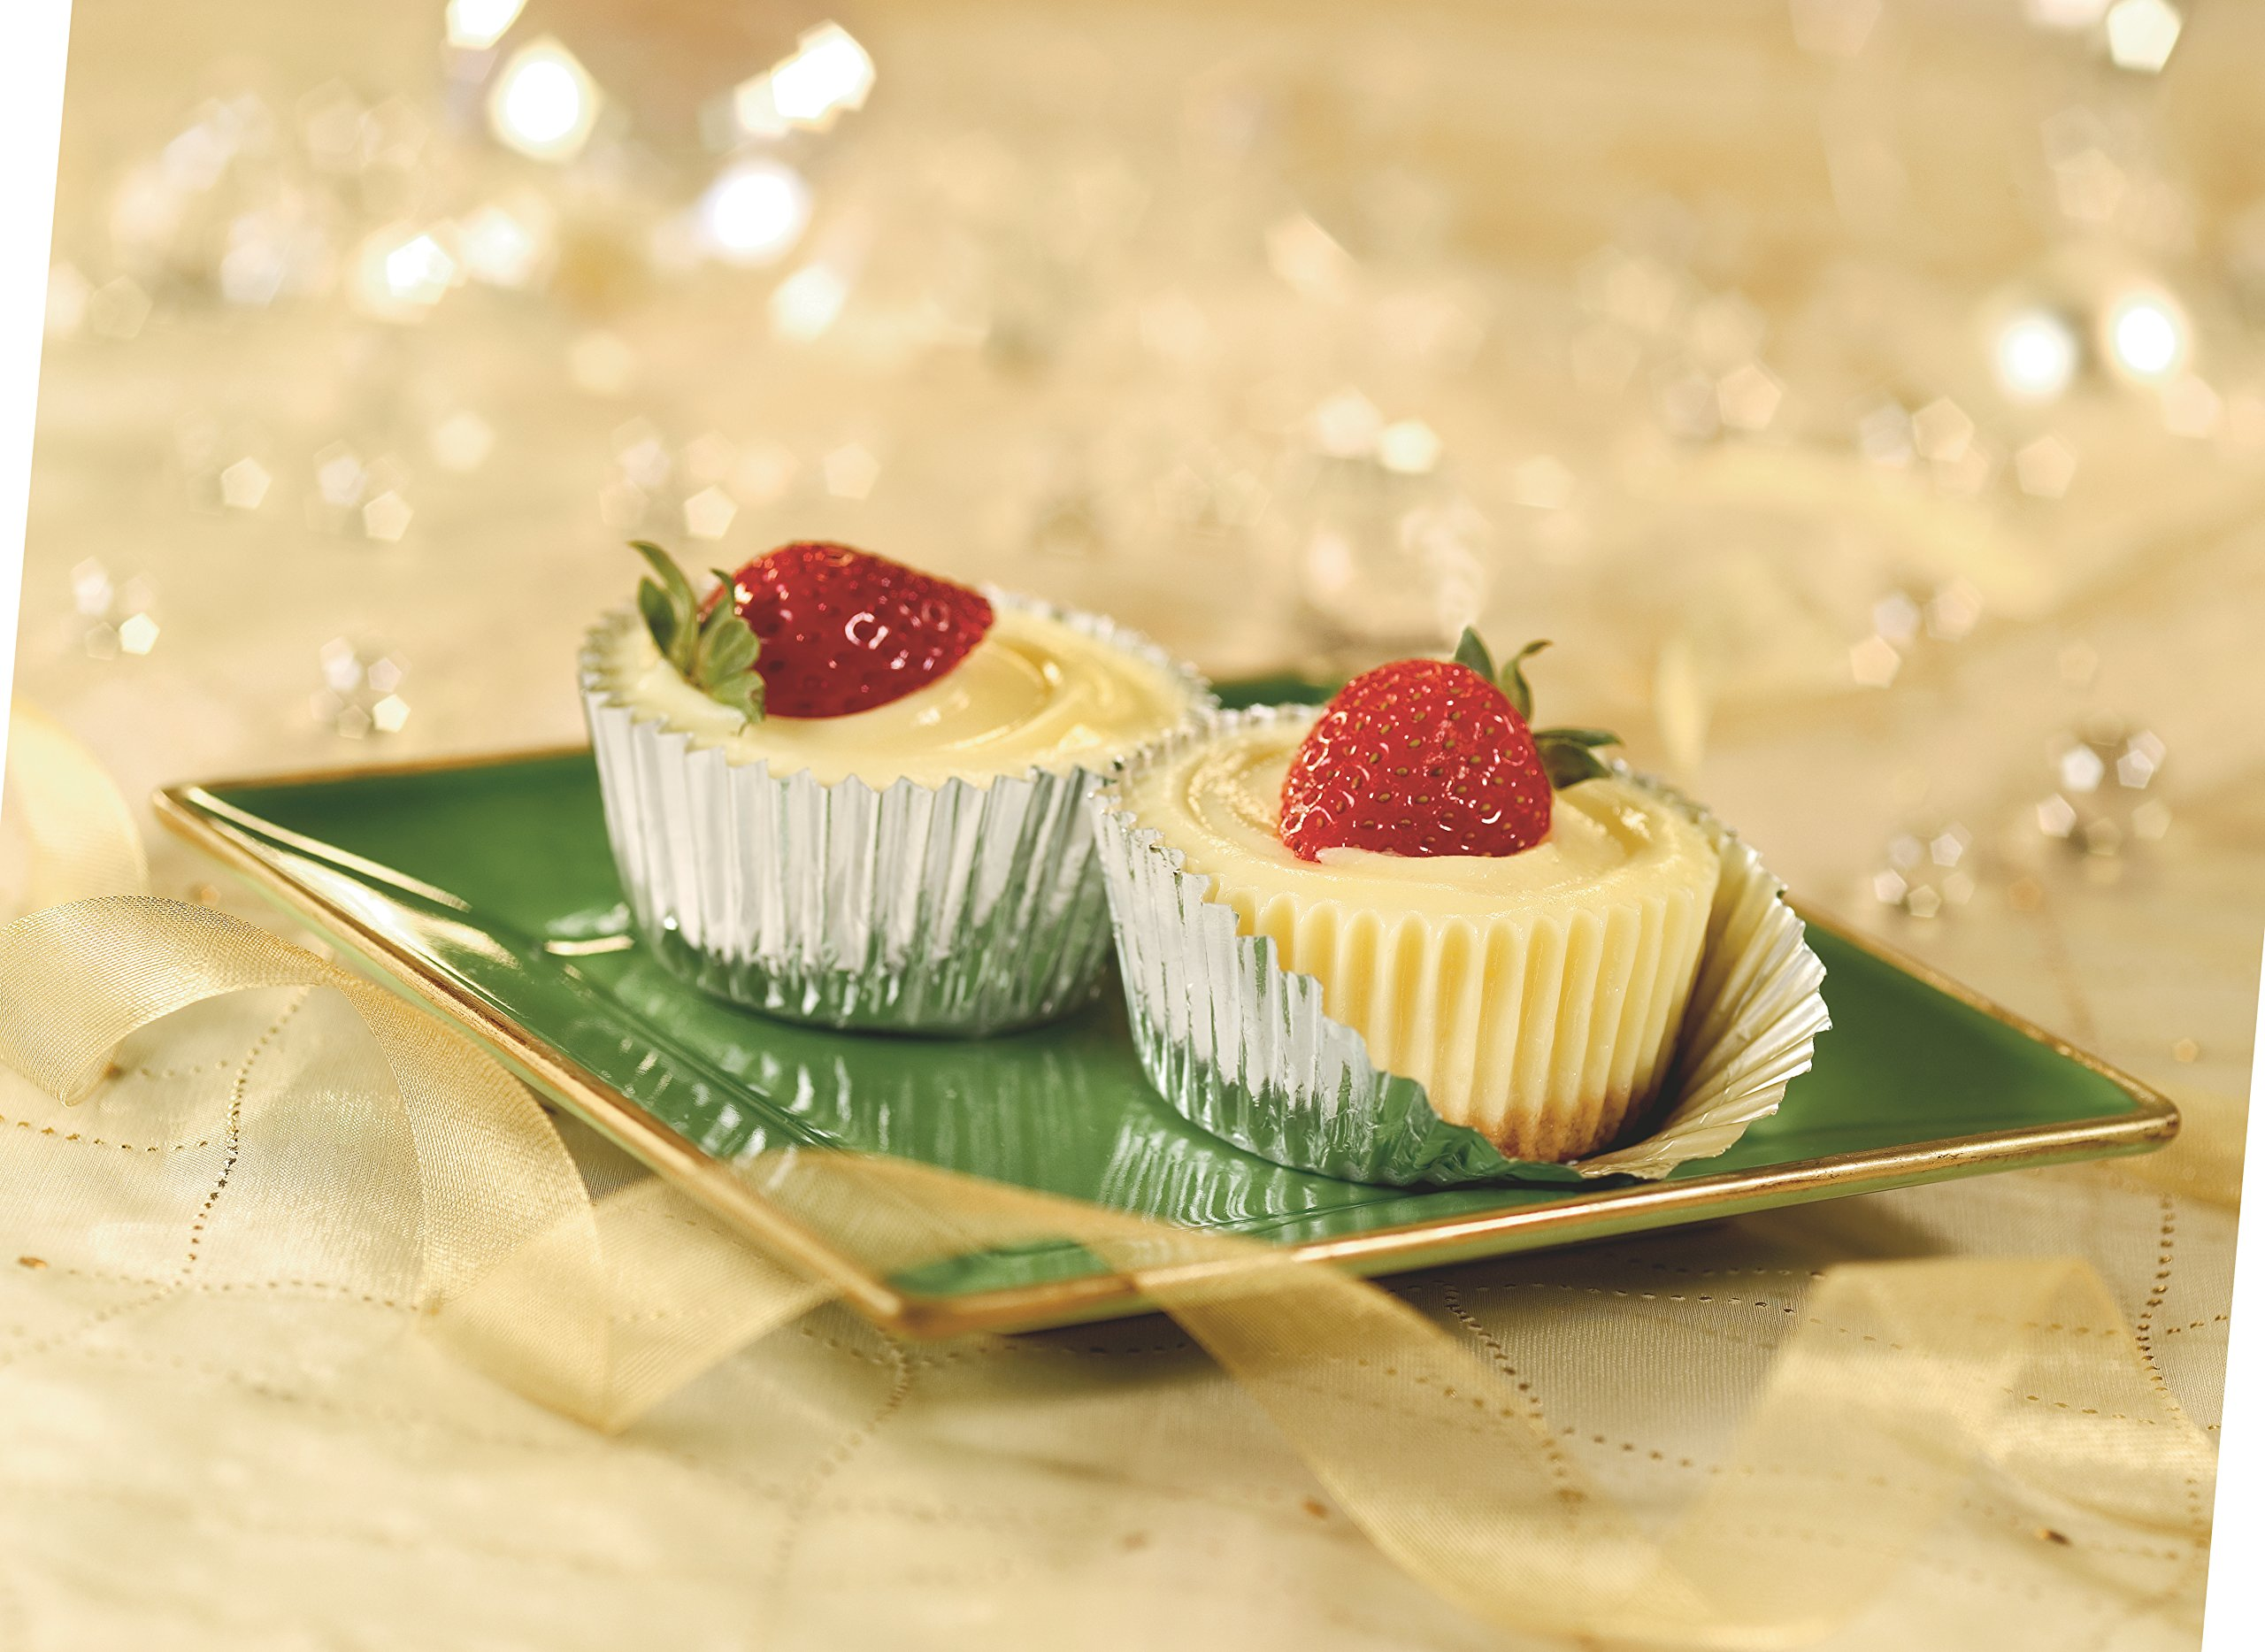 Reynolds Cupcake Liners/Muffin Cups/Baking Cups (Foil, 32 Count, Pack of 24) by Reynolds